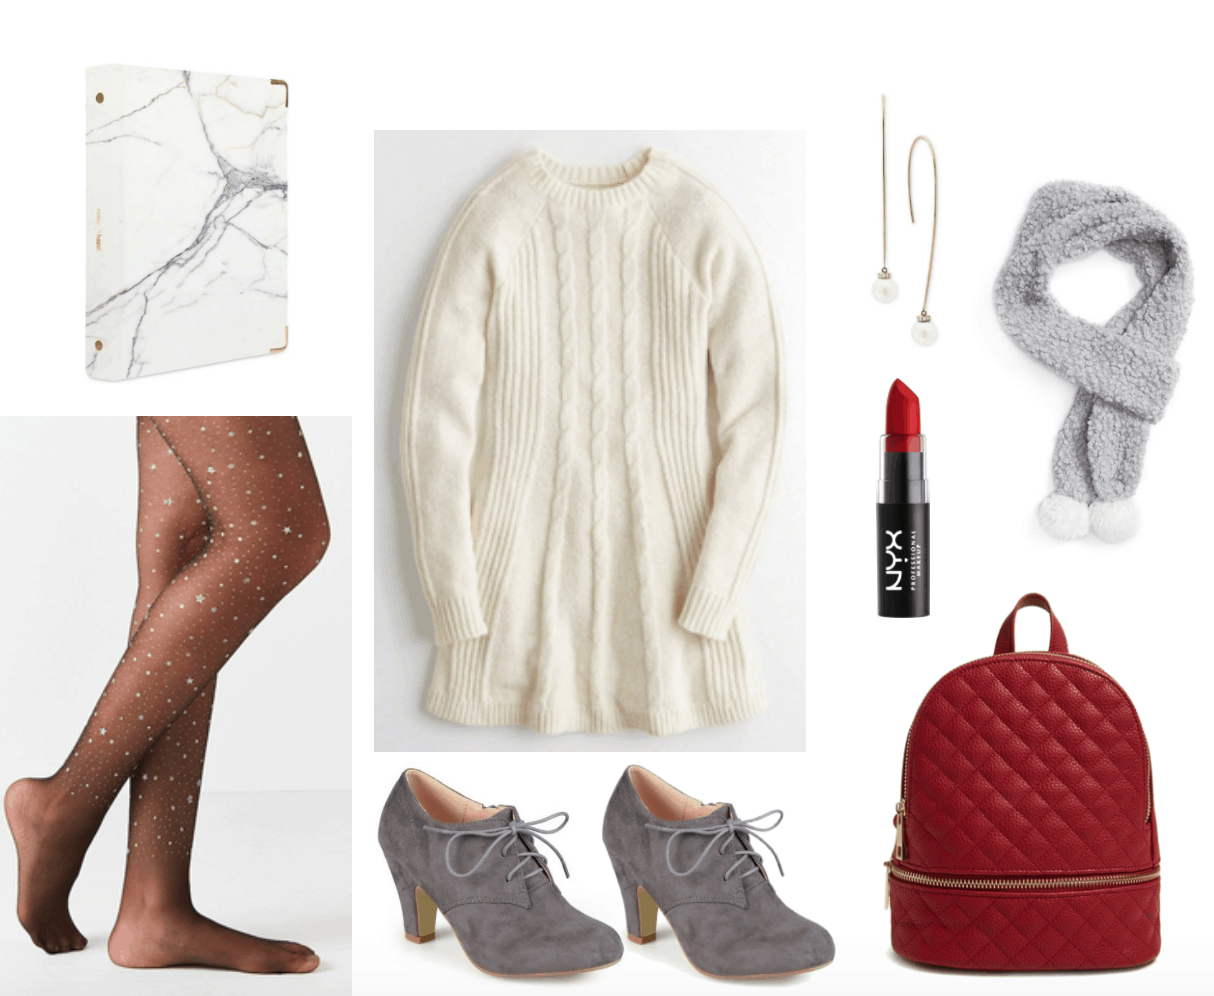 Outfit for studying including cream sweater dress and starry tights.